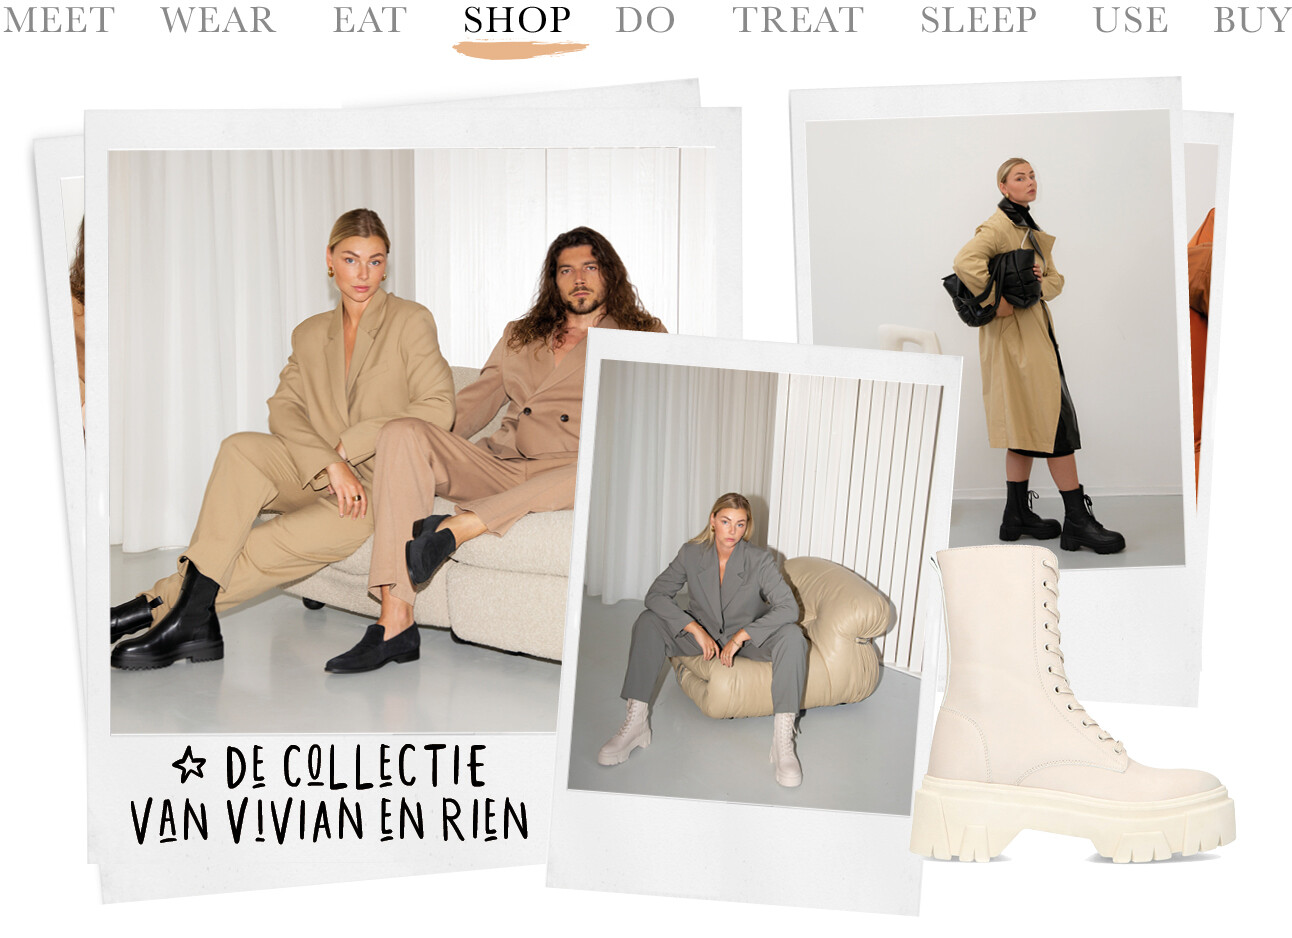 Today we shop de collectie van Vivian en Rien